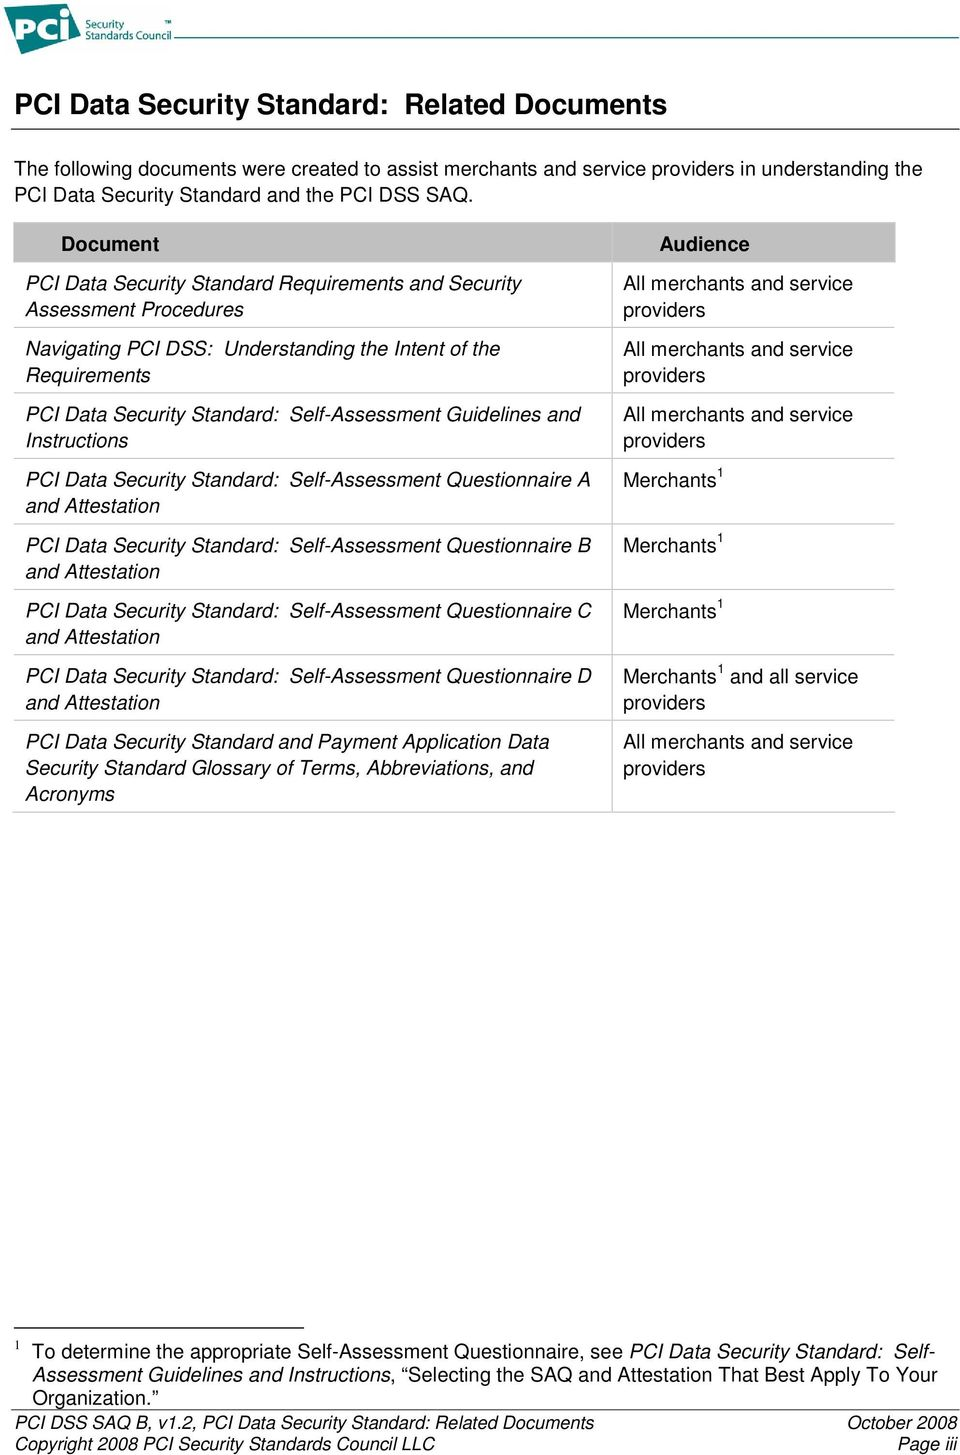 Guidelines and Instructions PCI Data Security Standard: Self-Assessment Questionnaire A and Attestation PCI Data Security Standard: Self-Assessment Questionnaire B and Attestation PCI Data Security